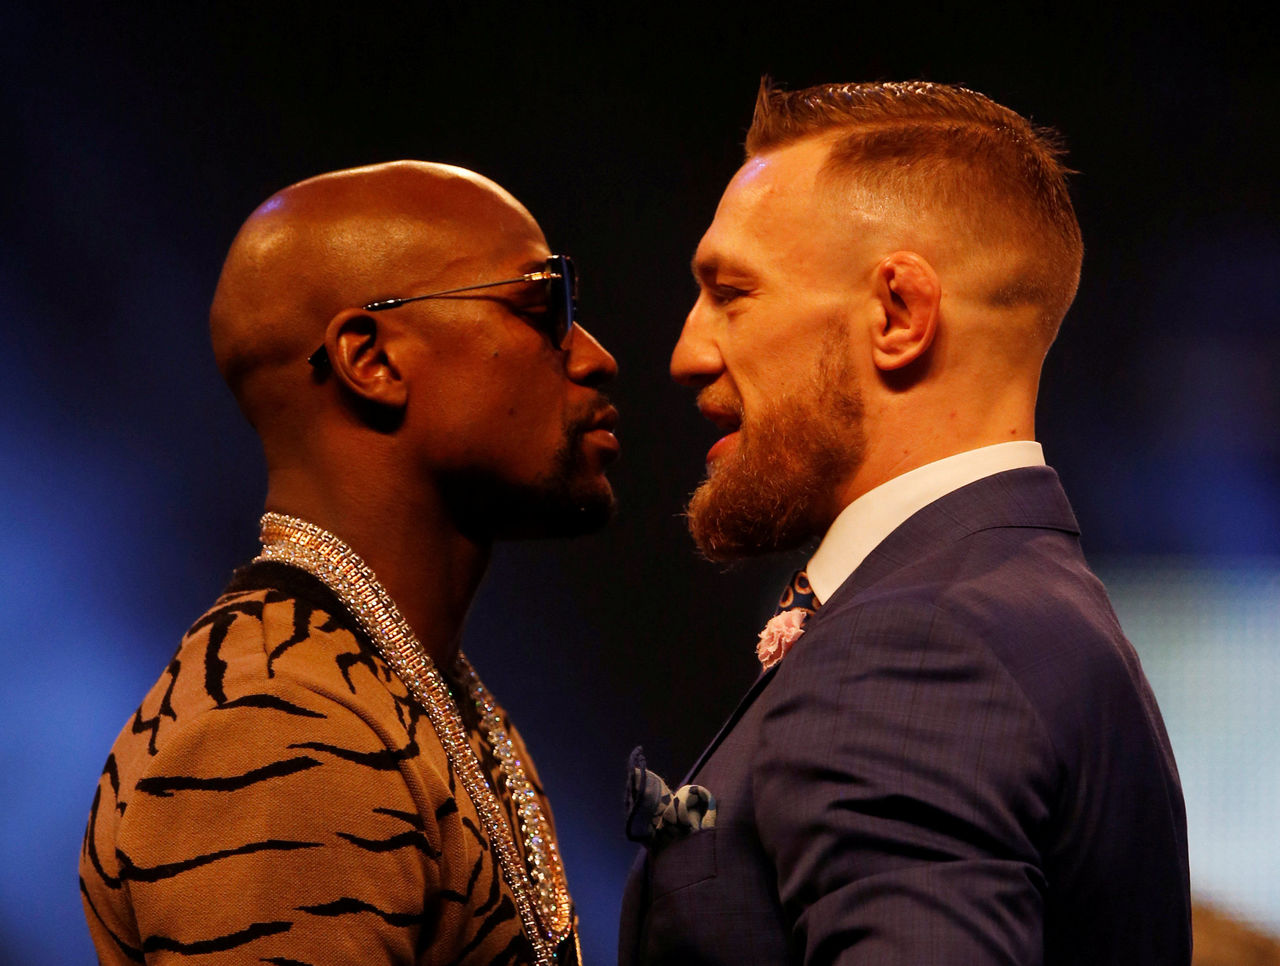 Cropped 2017 07 14t202810z 1569608098 rc17f9ad1670 rtrmadp 3 boxing mayweather mcgregor